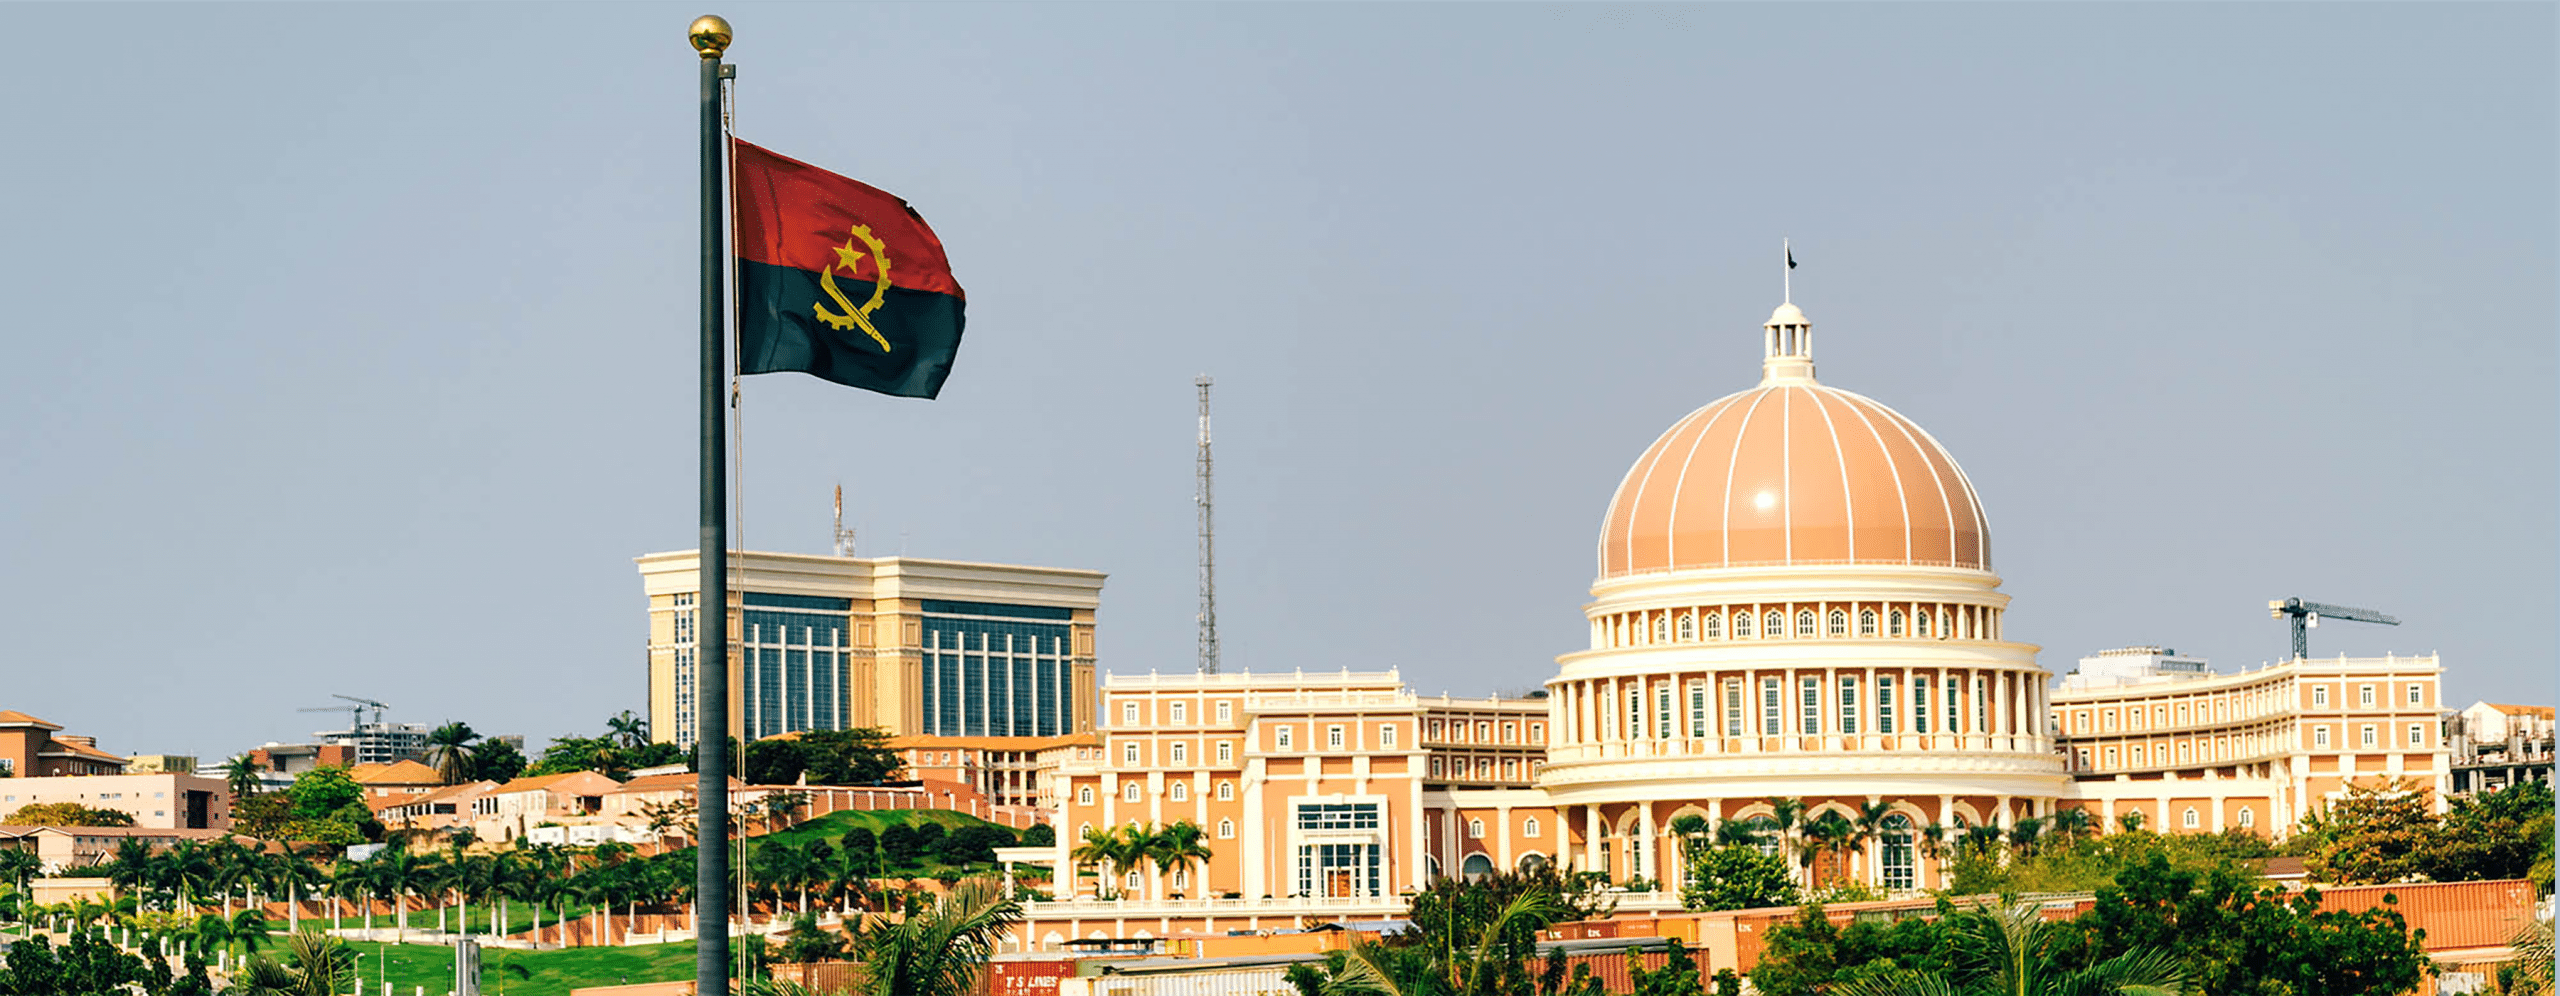 Universidade Católica and Sonangalp are the most recent clients of SISQUAL in Angola